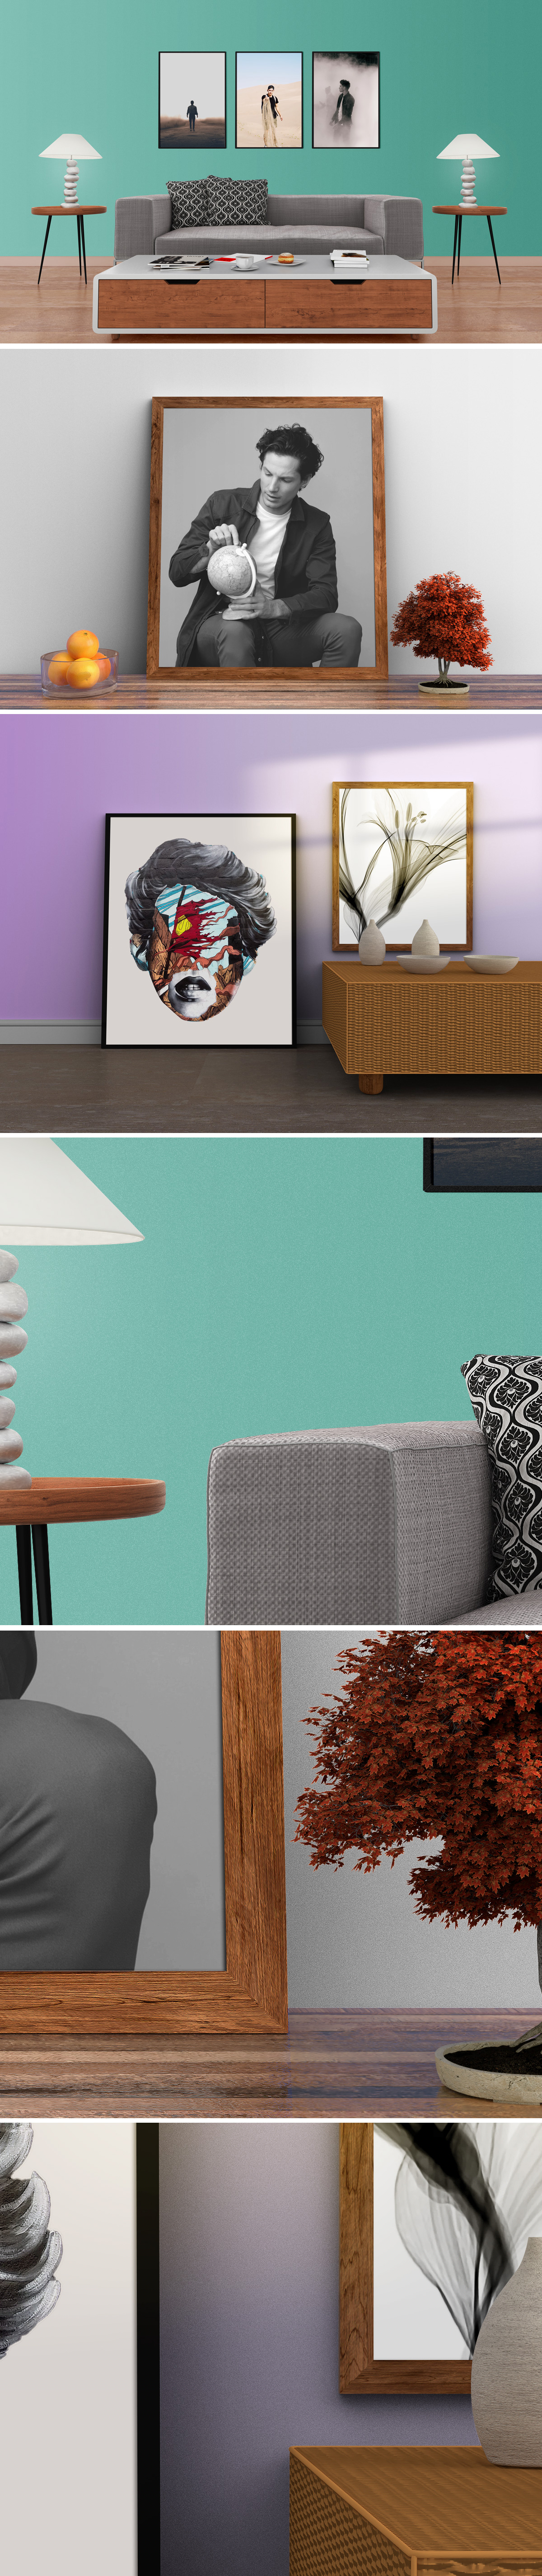 Home Interior Photo Frame Mockup PSDs